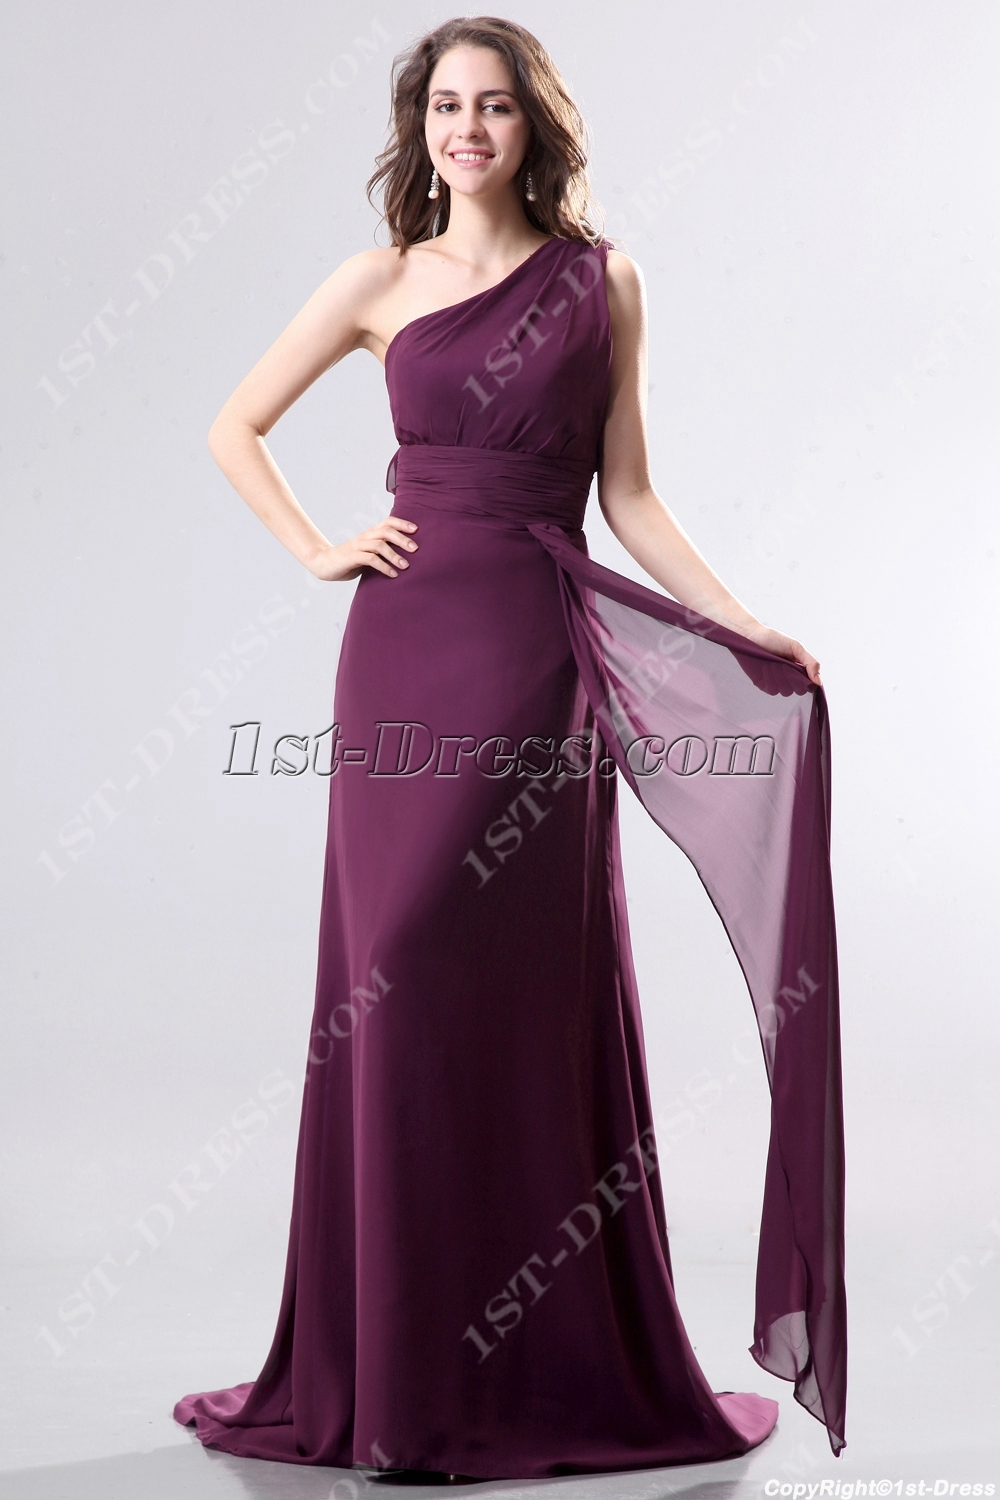 Dark Purple One Shoulder Chiffon Evening Dress with Train:1st-dress.com